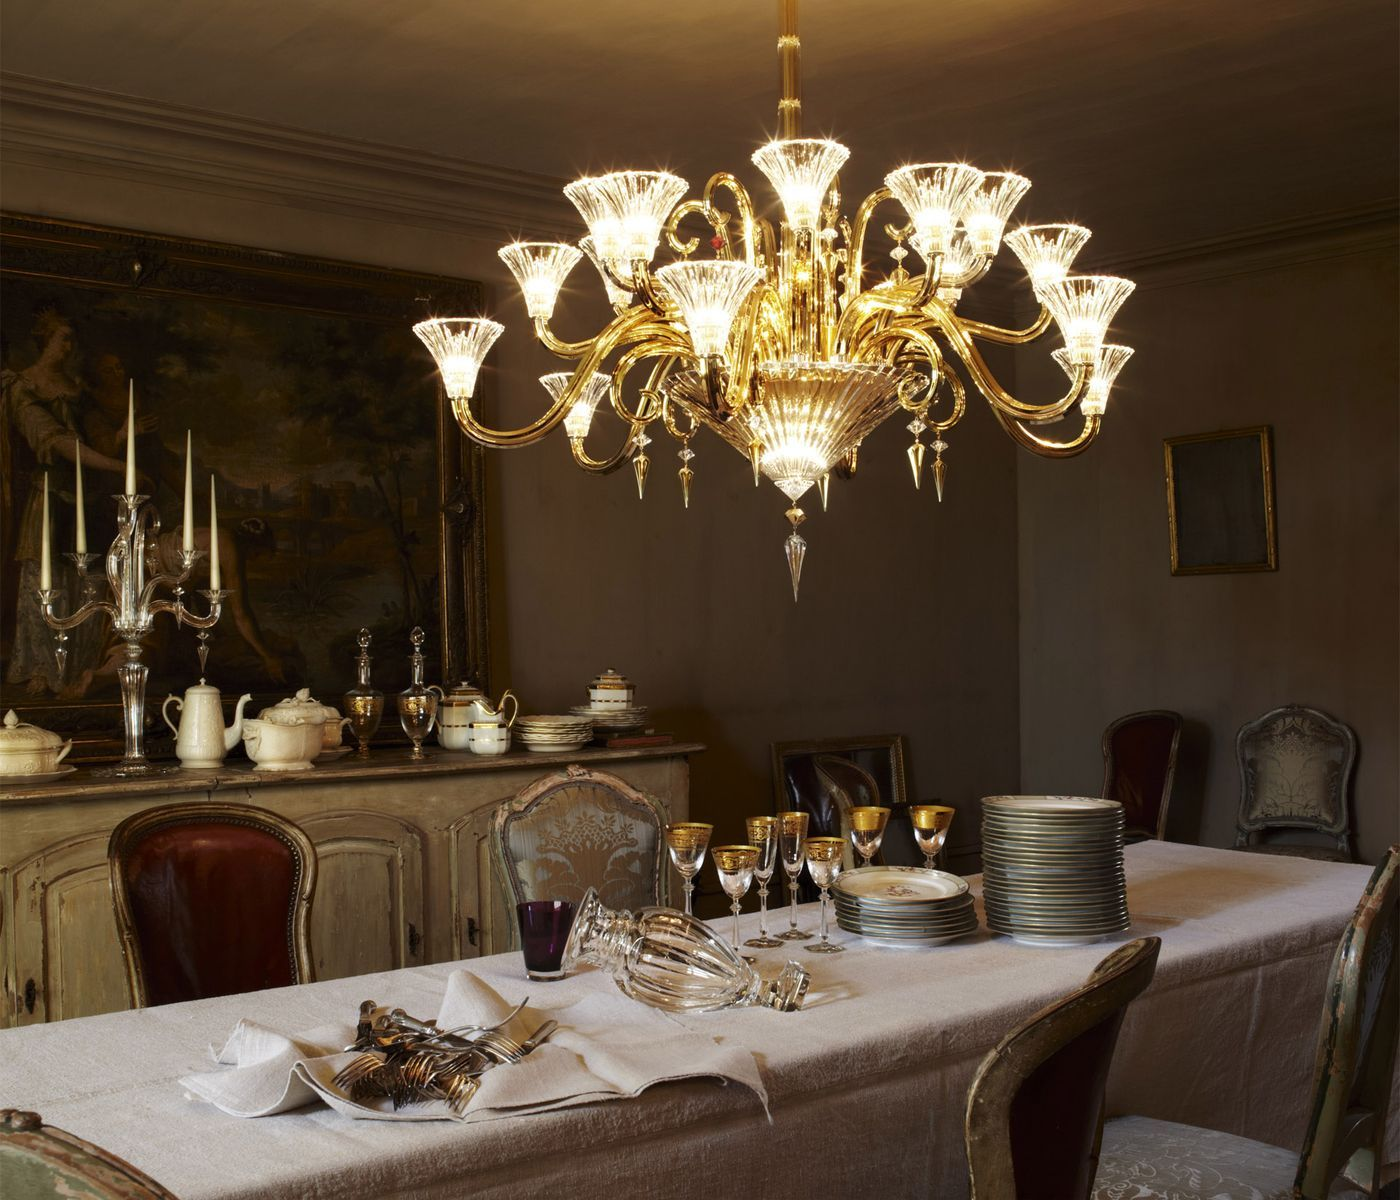 Baccarat – Mille Nuits. Chandelier